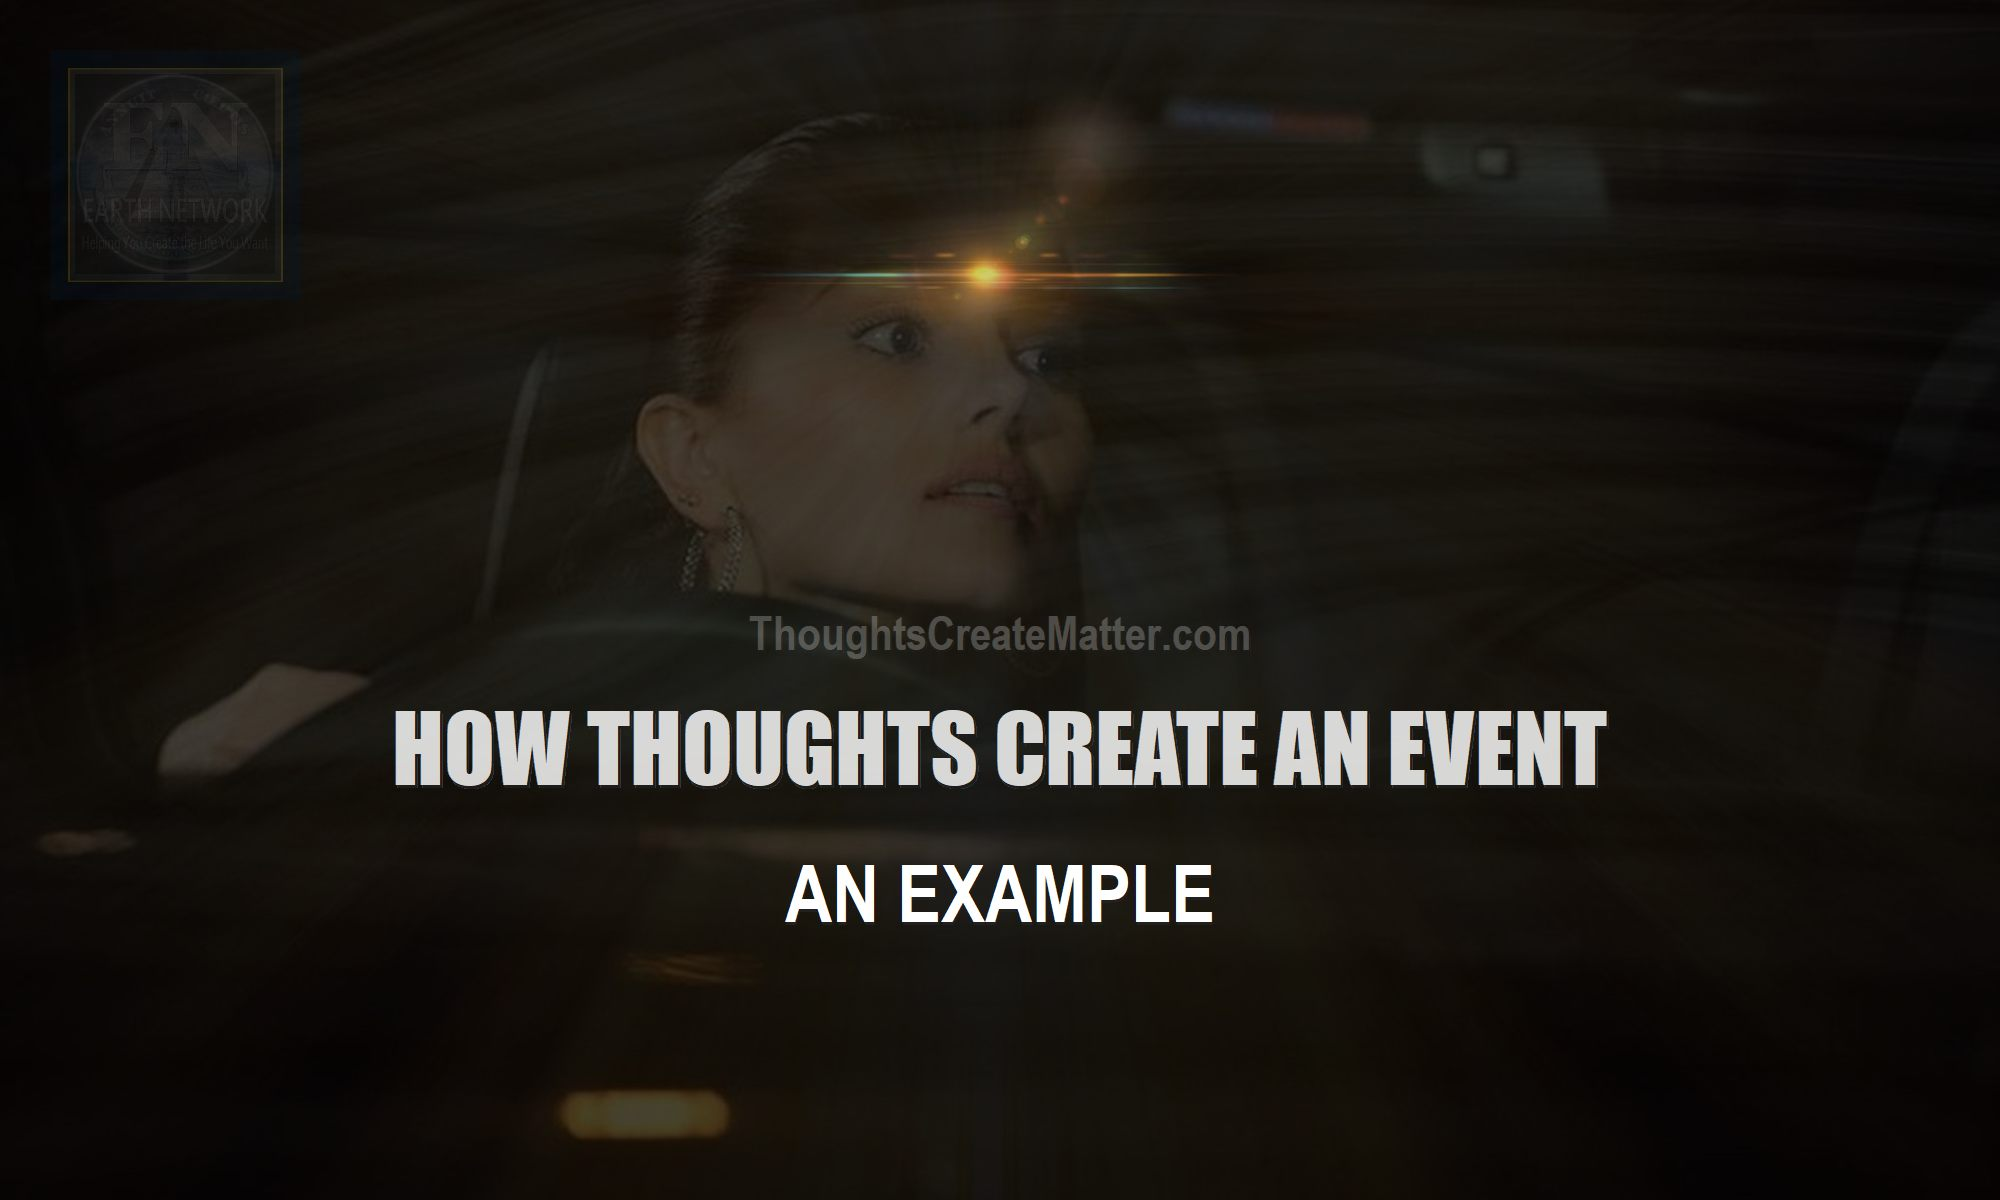 how-thoughts-create-matter-an-example-of-how-your-thoughts-create-events-near-accident